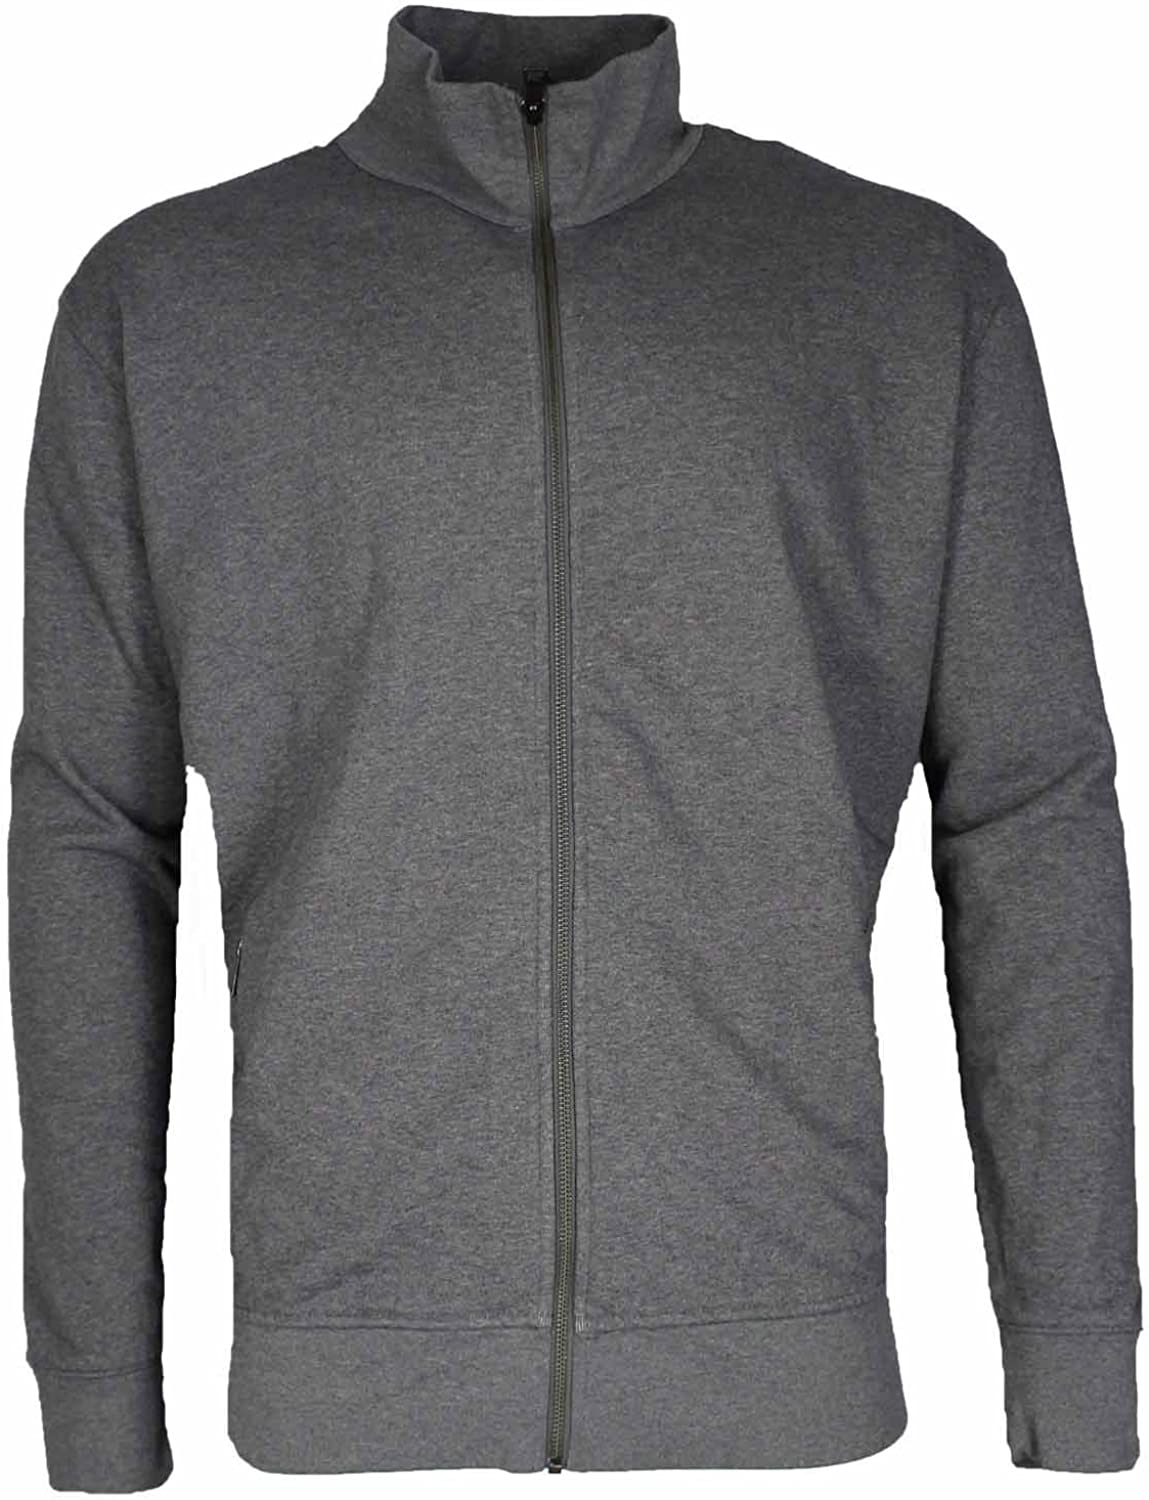 1fdb273e64639 Kirkland Kirkland Kirkland Signature Men's Full Zip Mock Neck Sweatshirt  cf4ce8